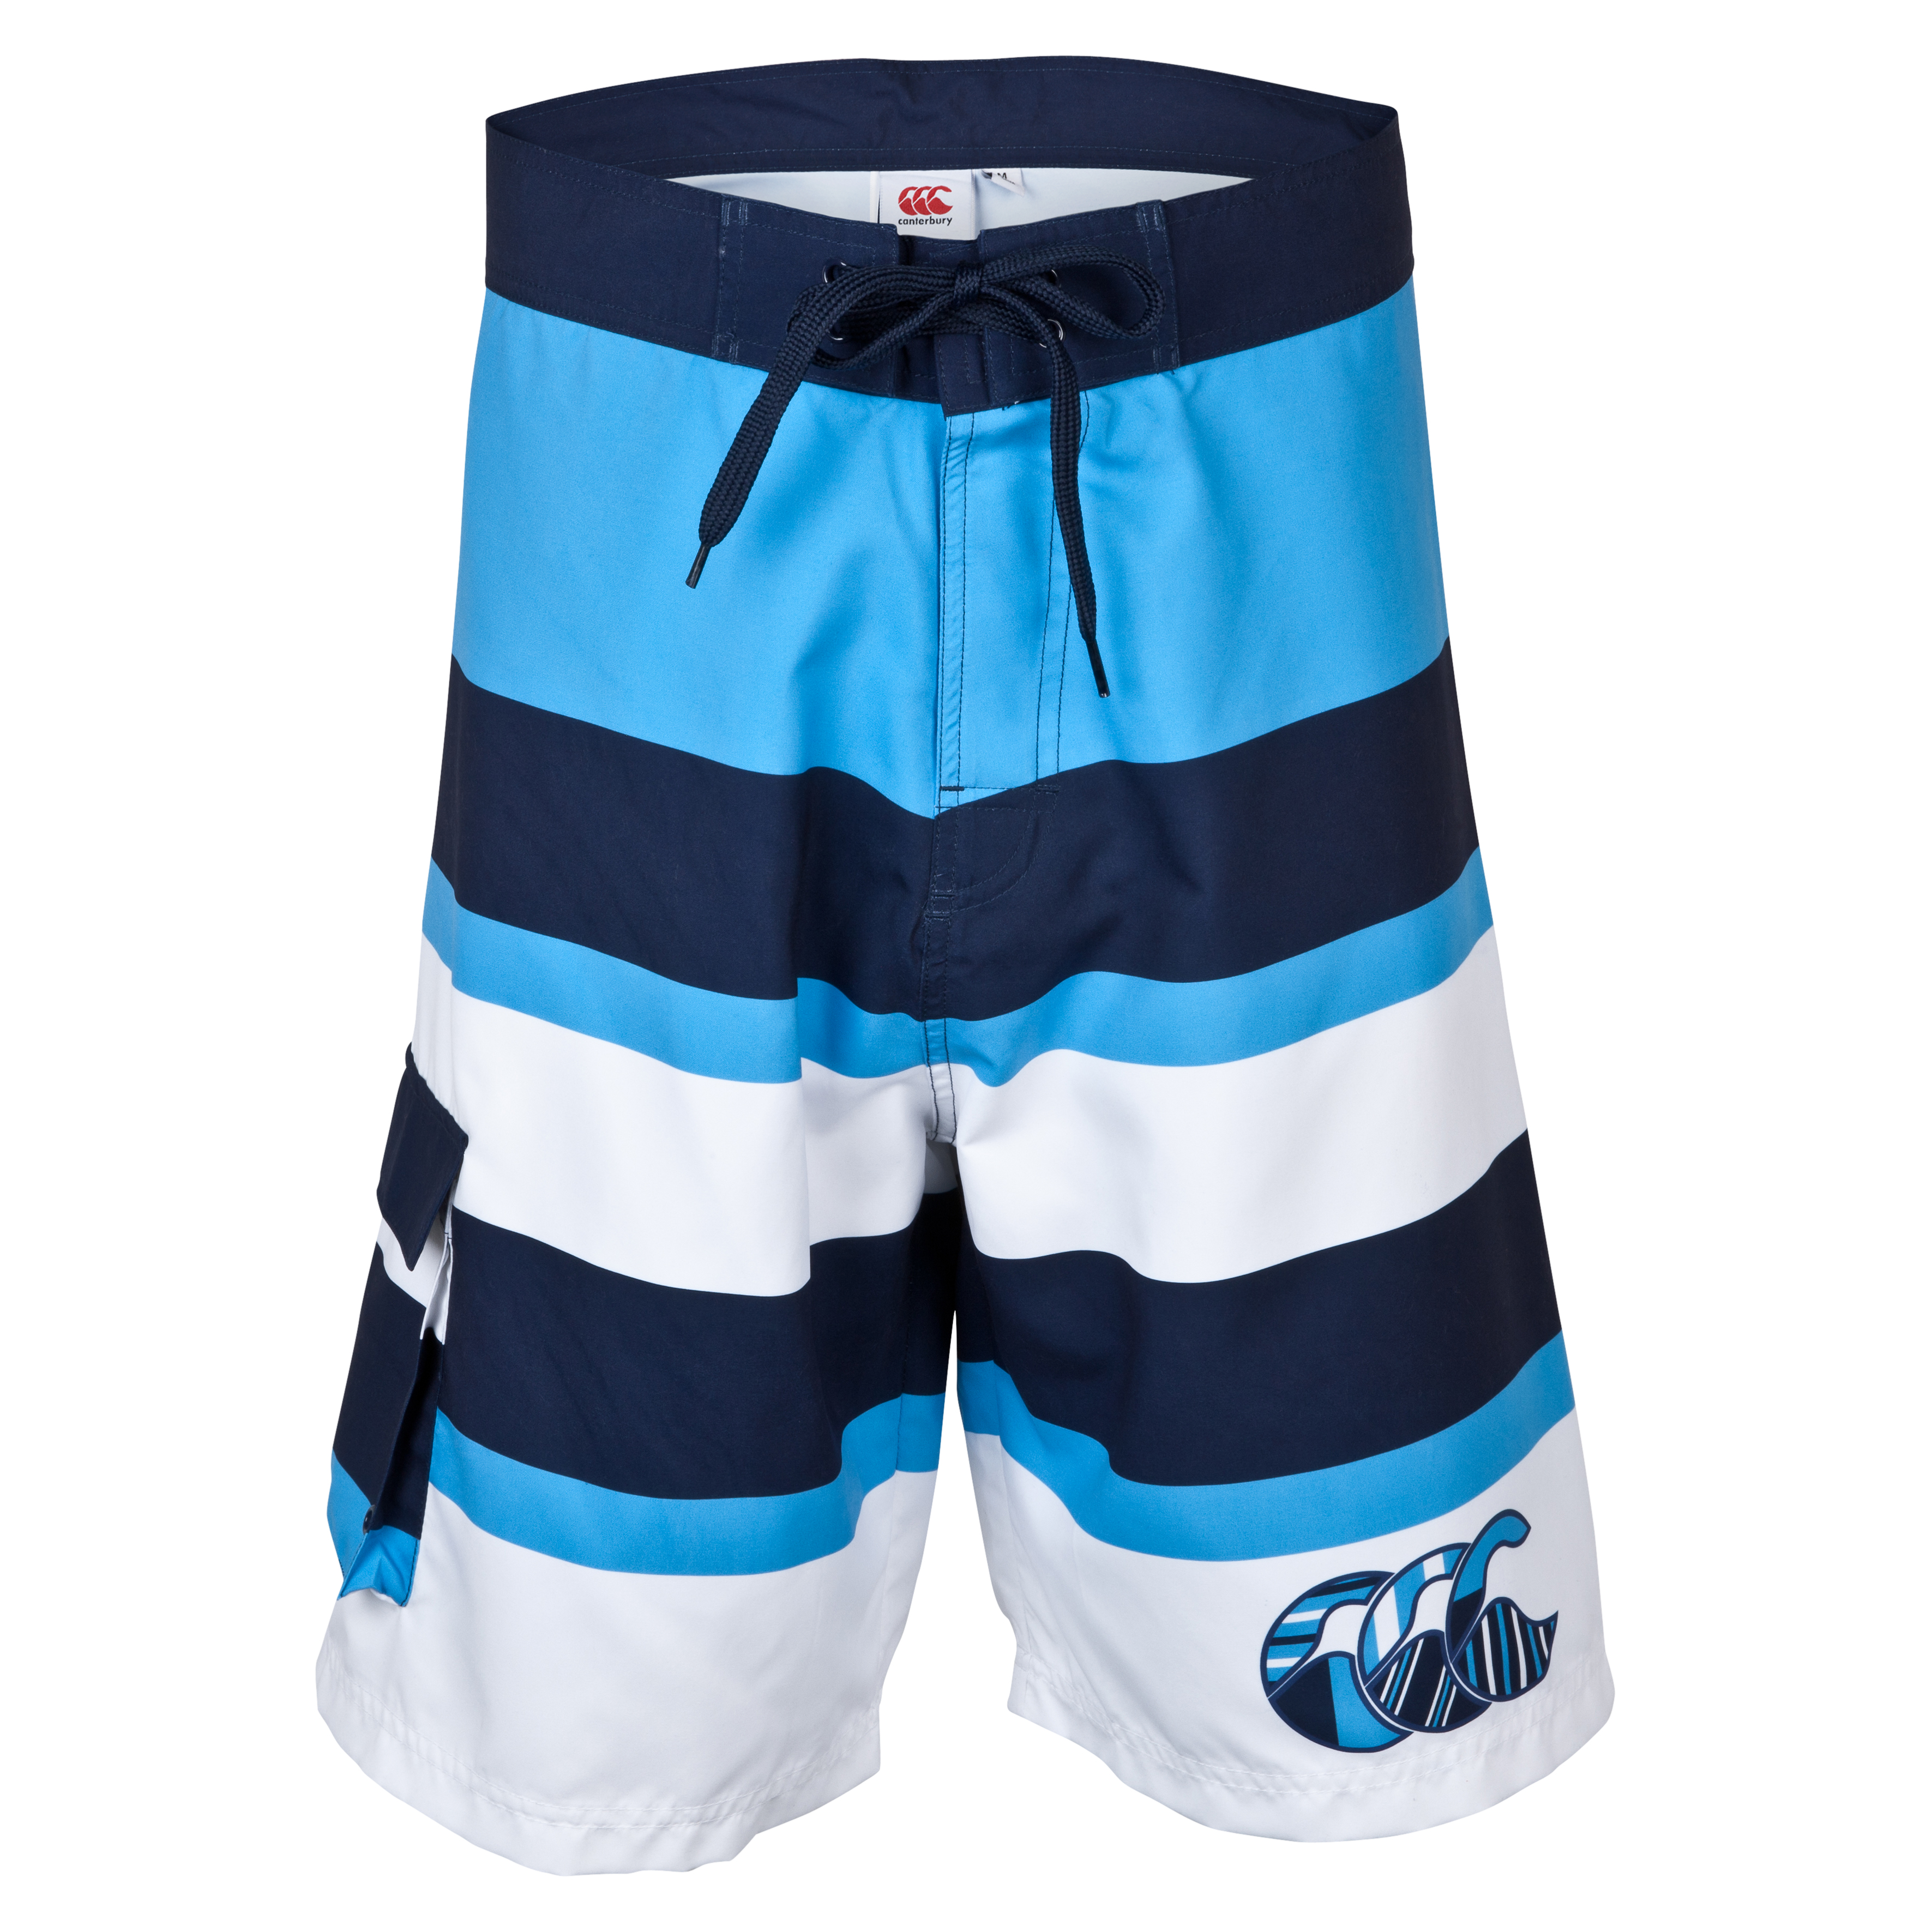 Canterbury Uglies Striped Board Short  - Navy/Malibu